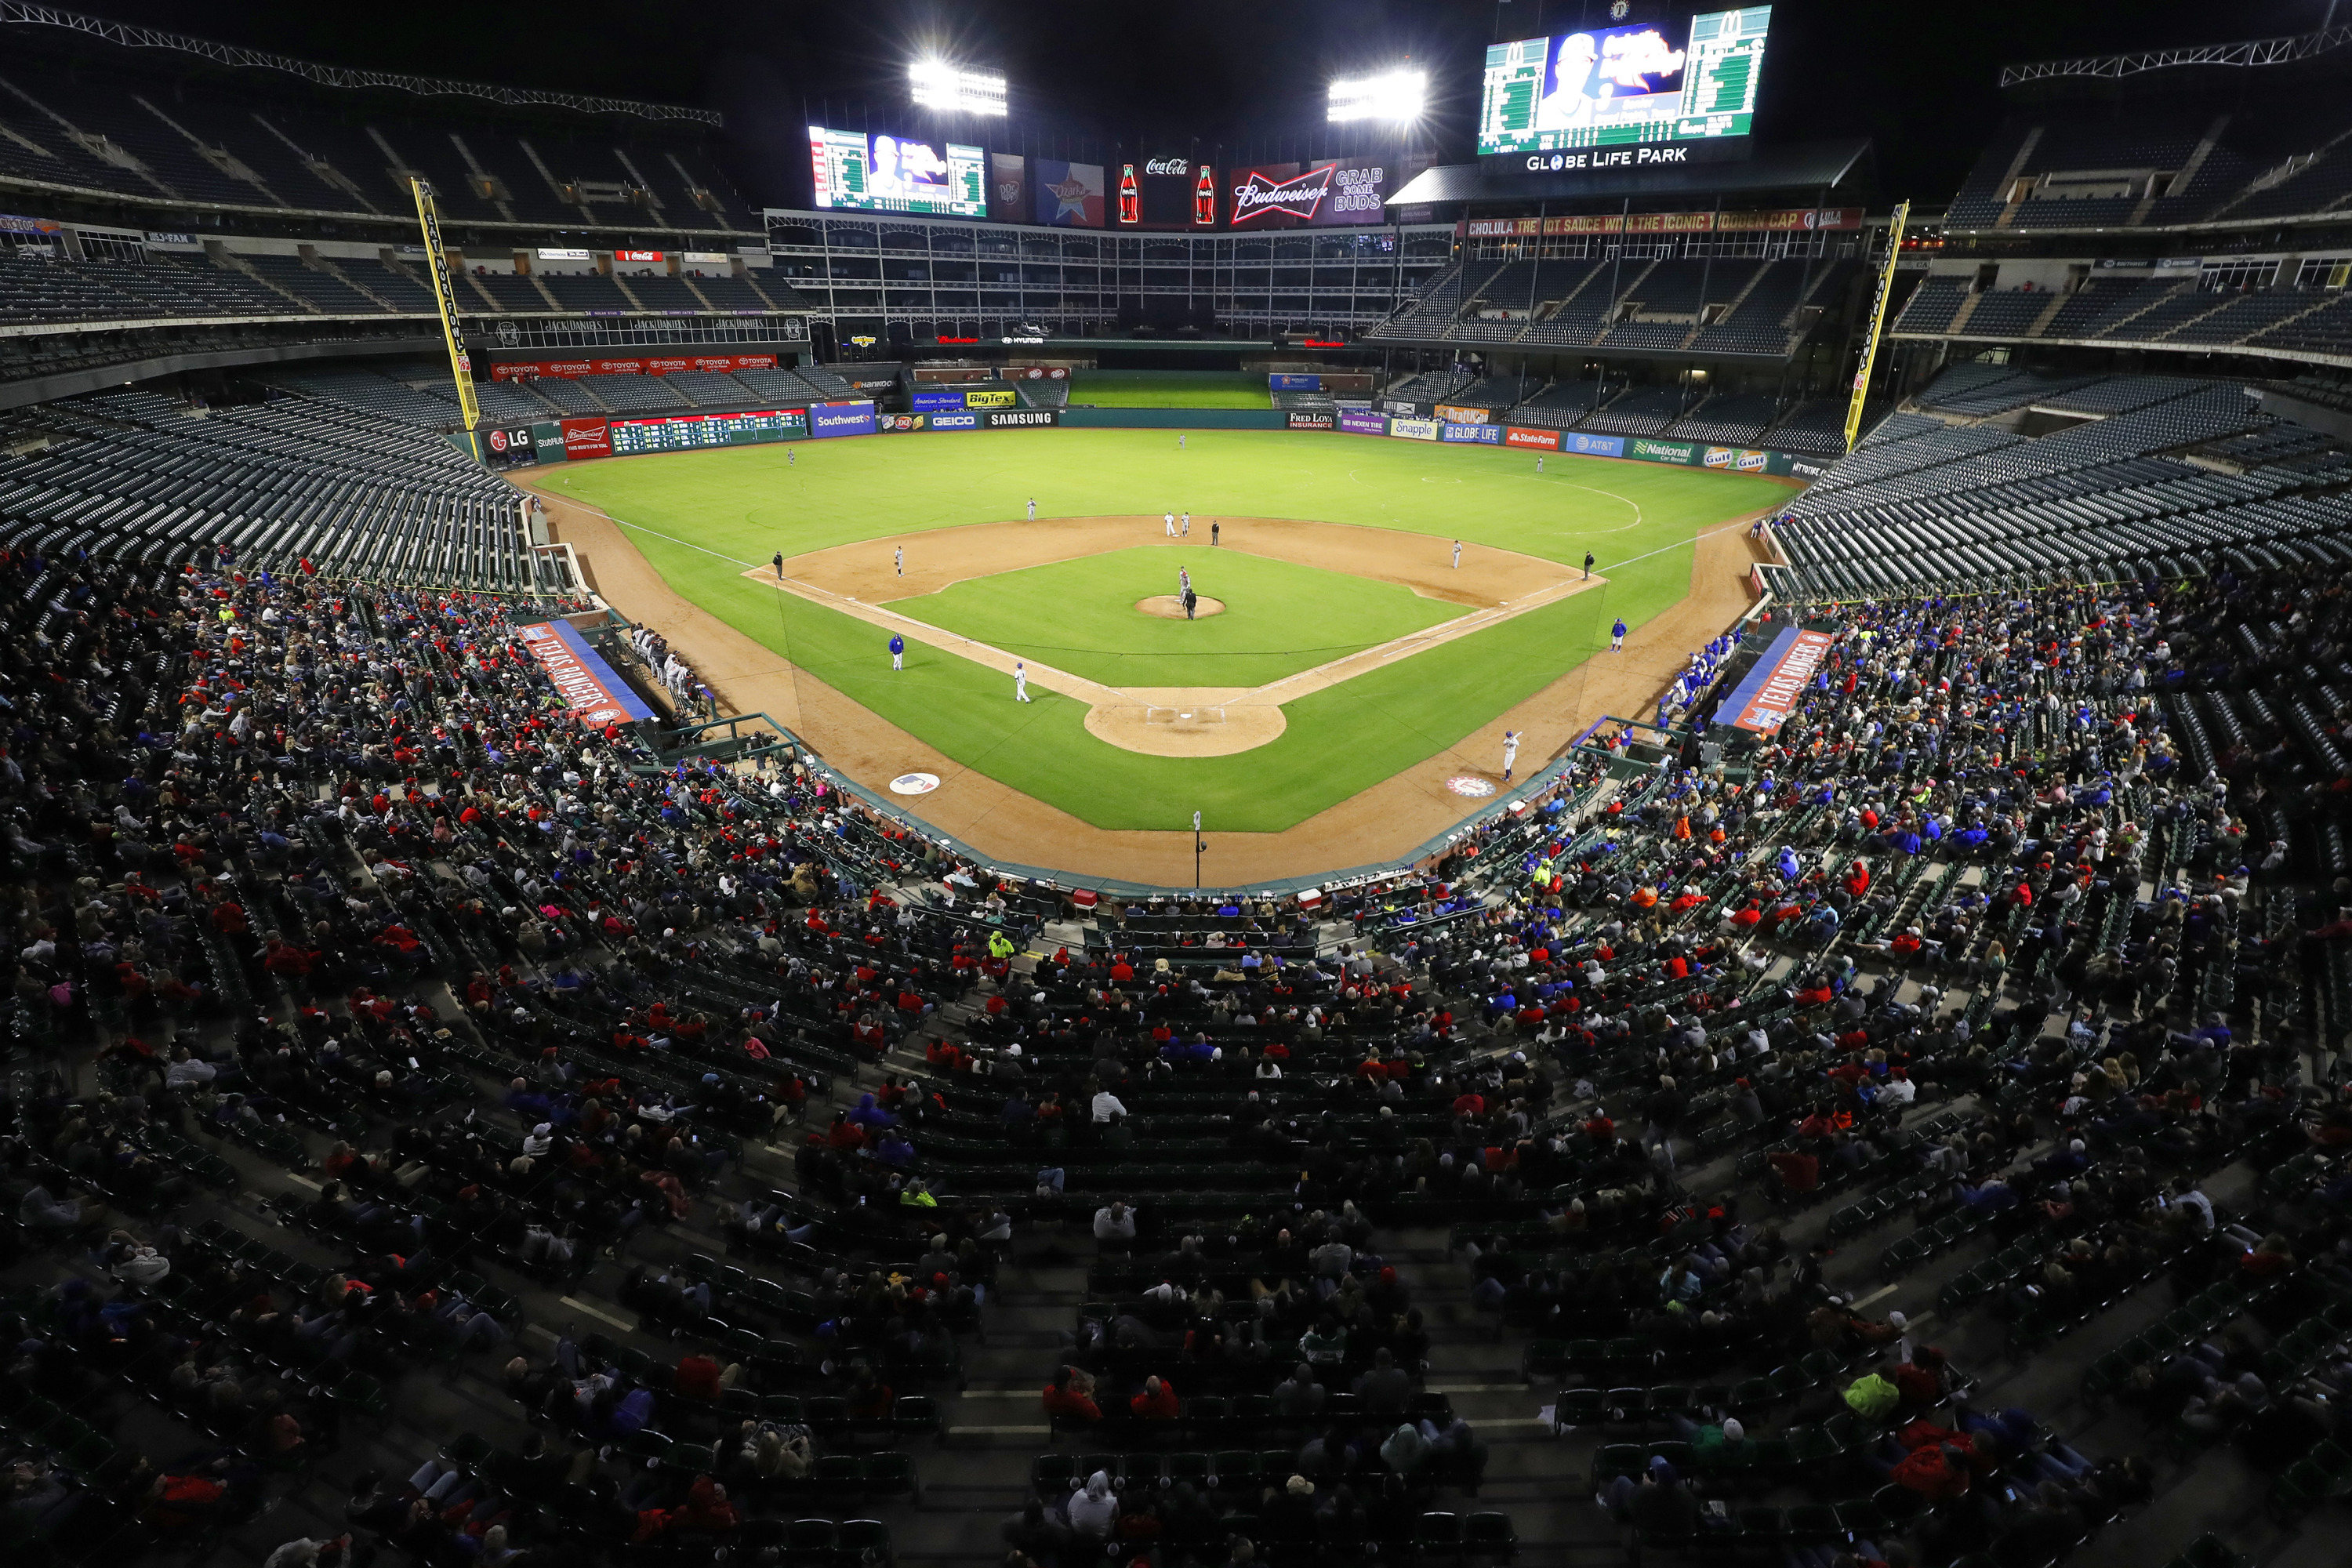 BSB  Mavs vs. Baylor at Globe Life Set for 2018 - University of ... 9e429166ef36